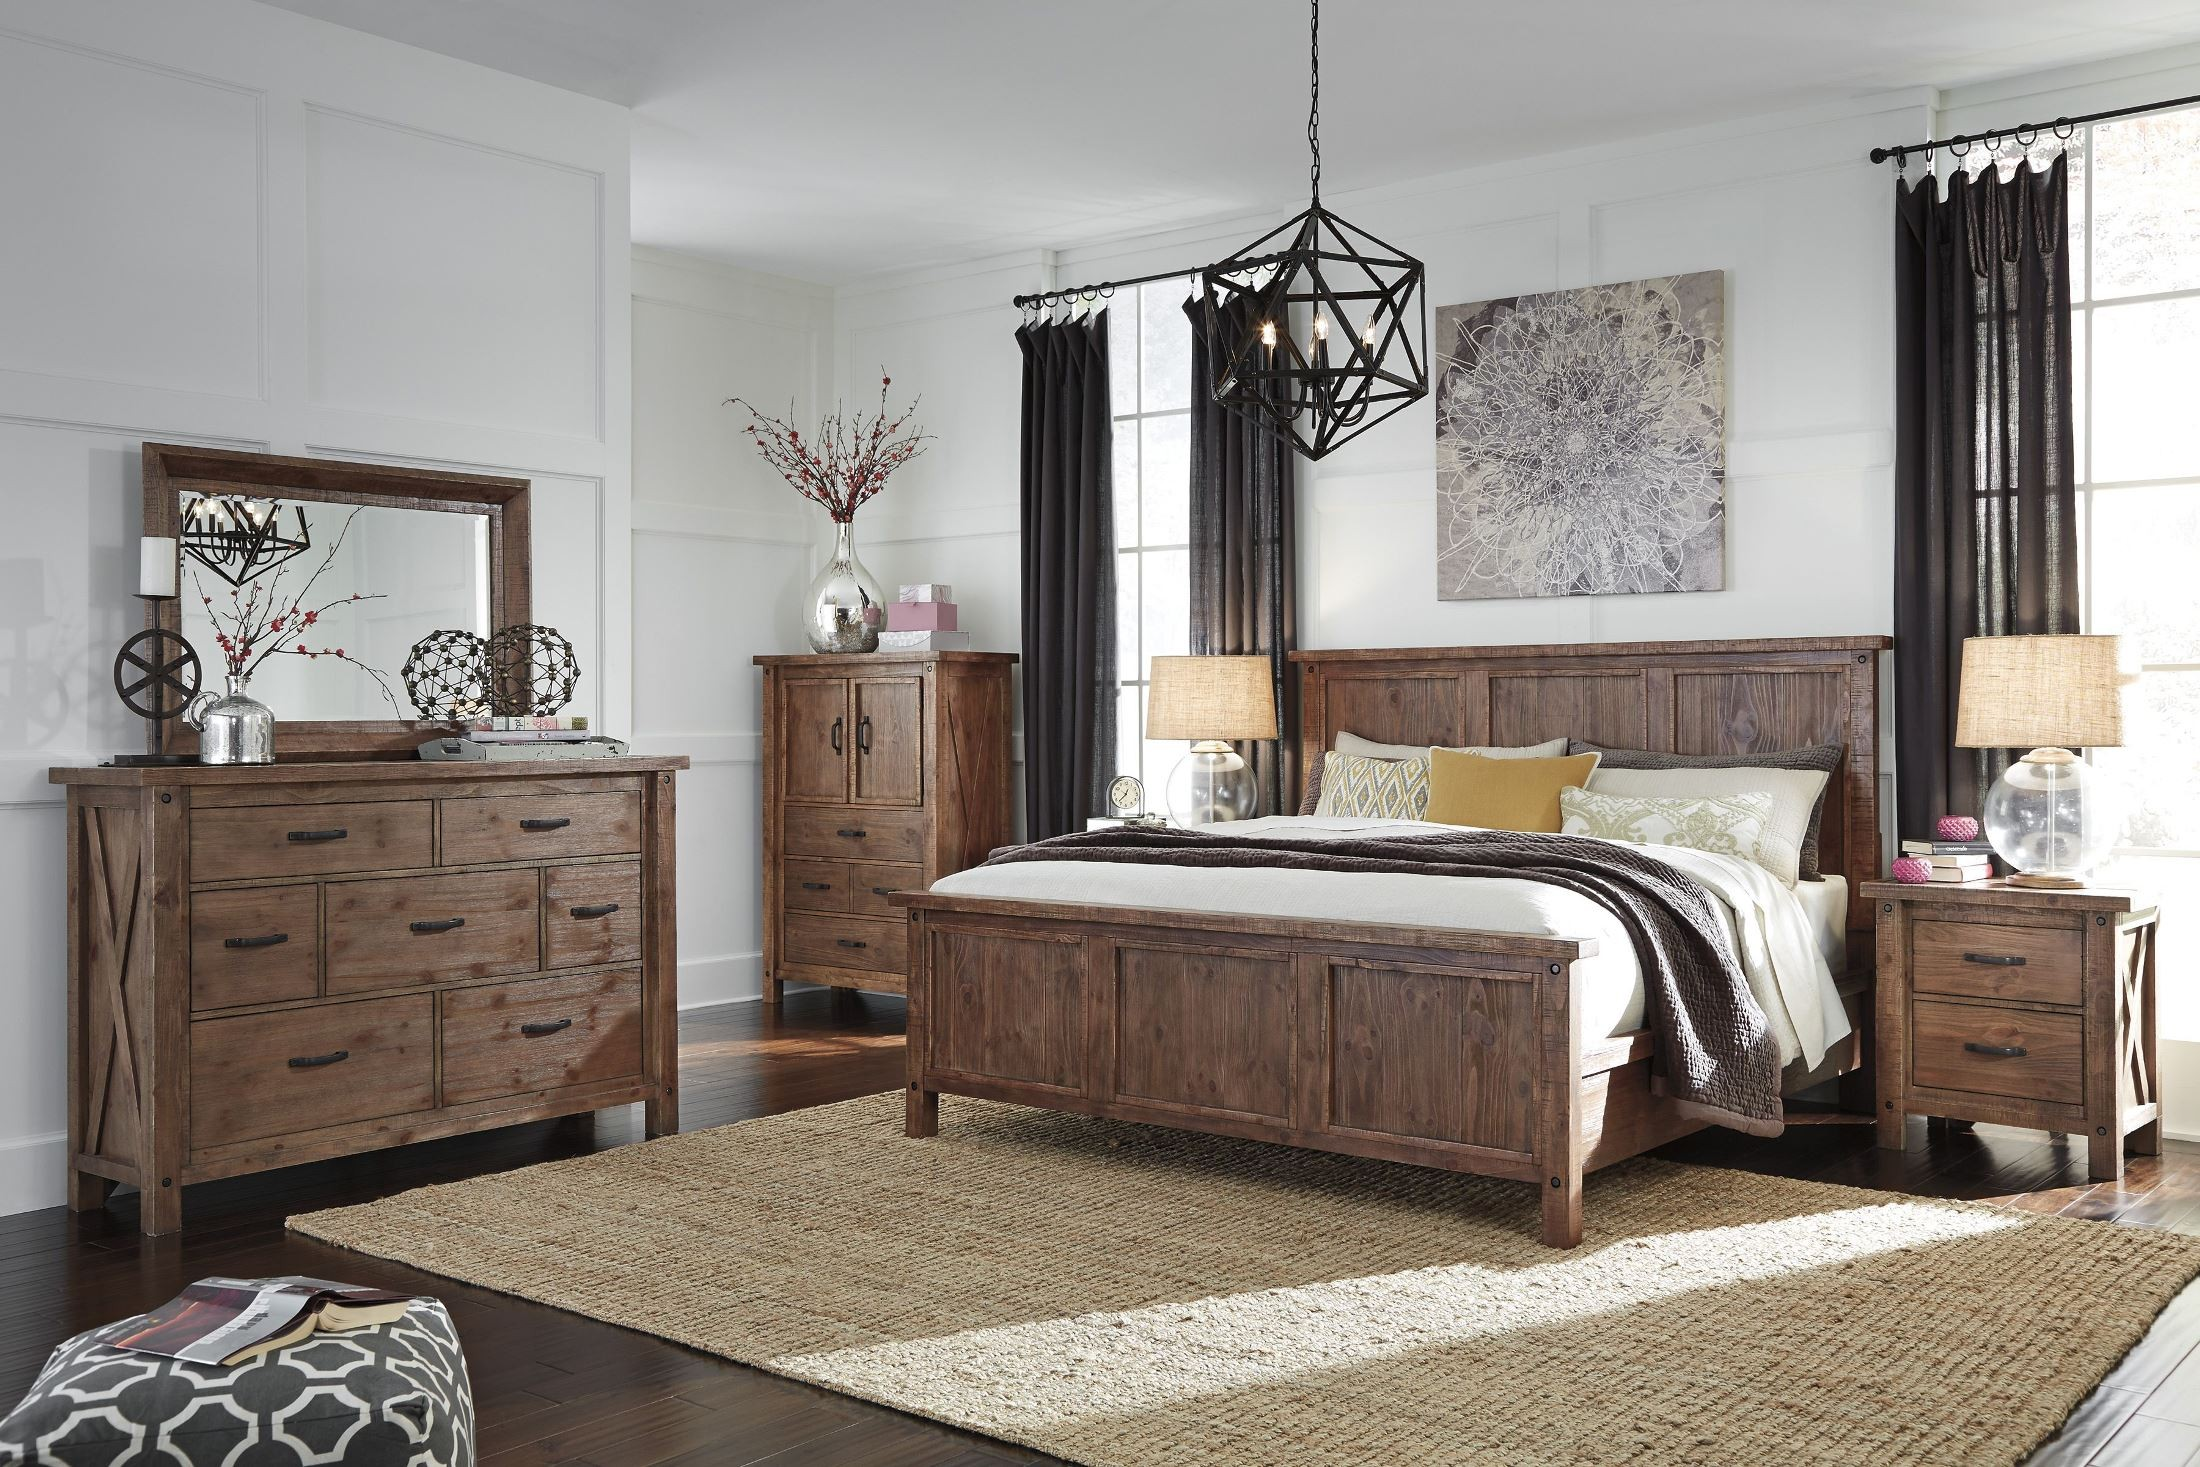 Furniture Bedroom Set Tamilo With Bedroom Furniture Free Delivery One